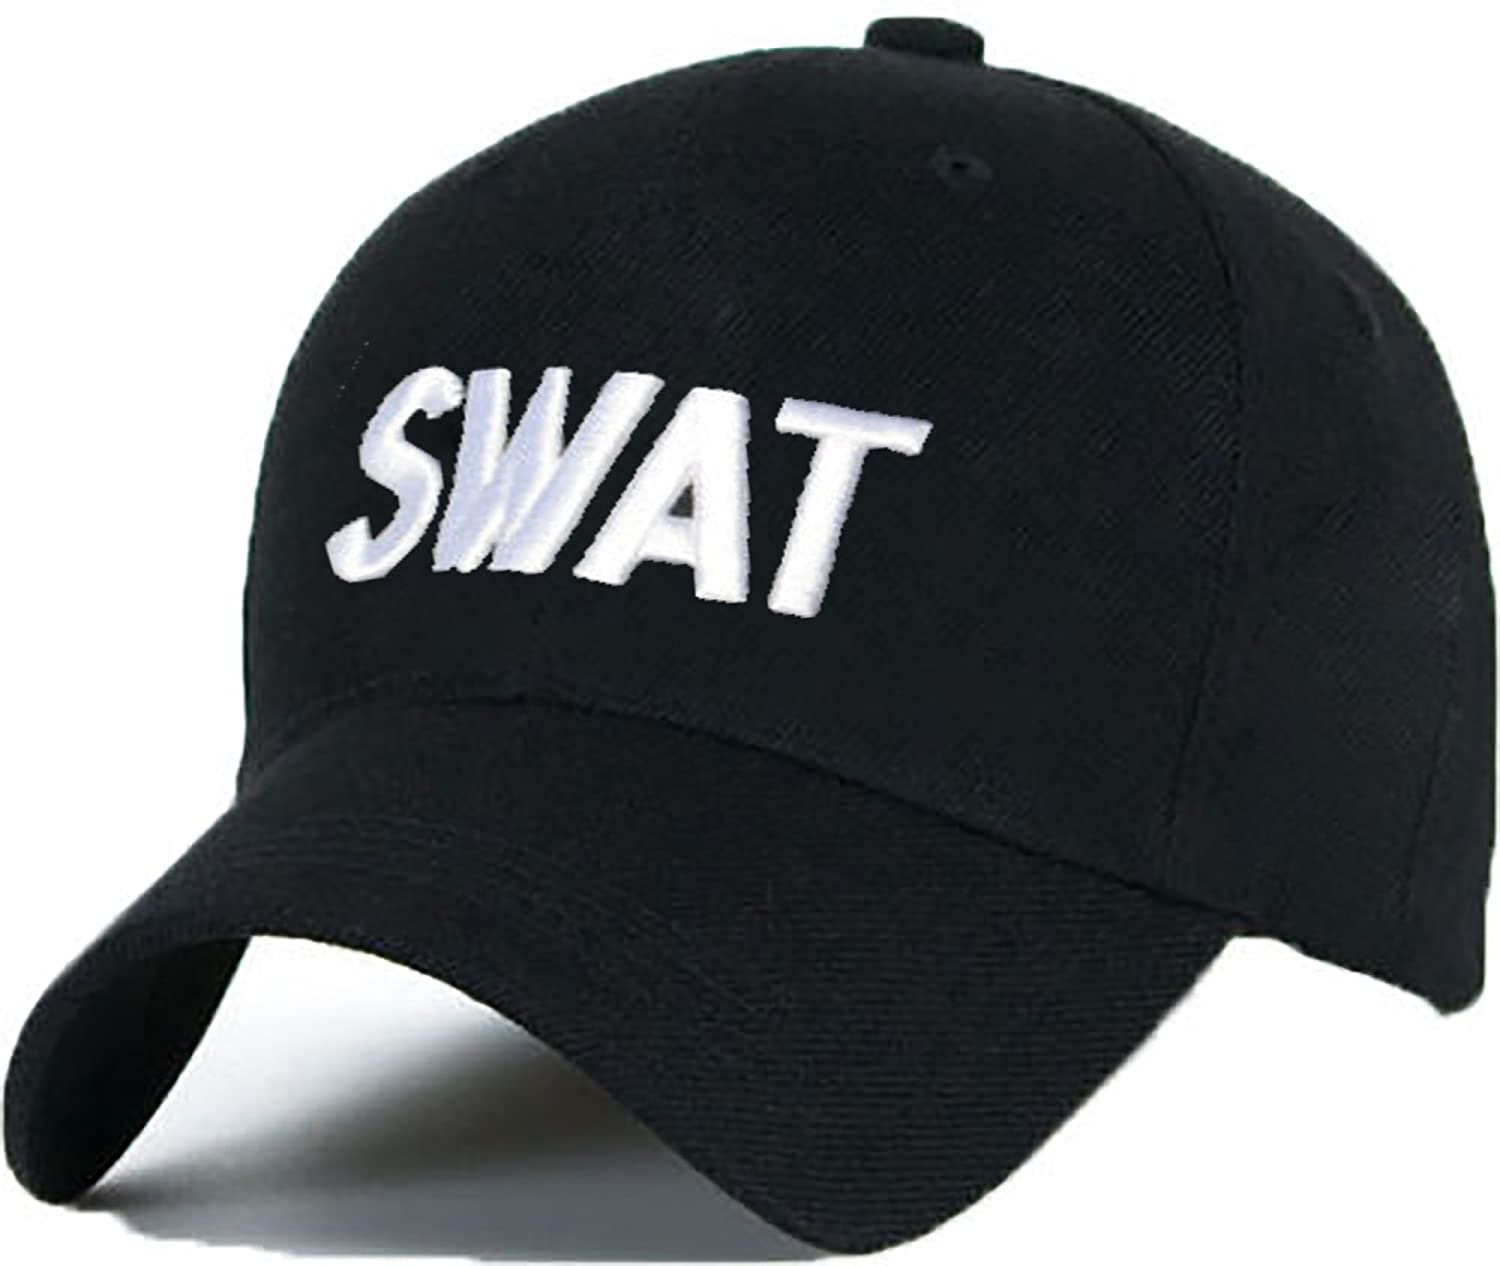 Casual Cotton Baseball Cap SWAT hat hats caps adjustable Snapback LA BOY YOLO GEEK WOLF 01